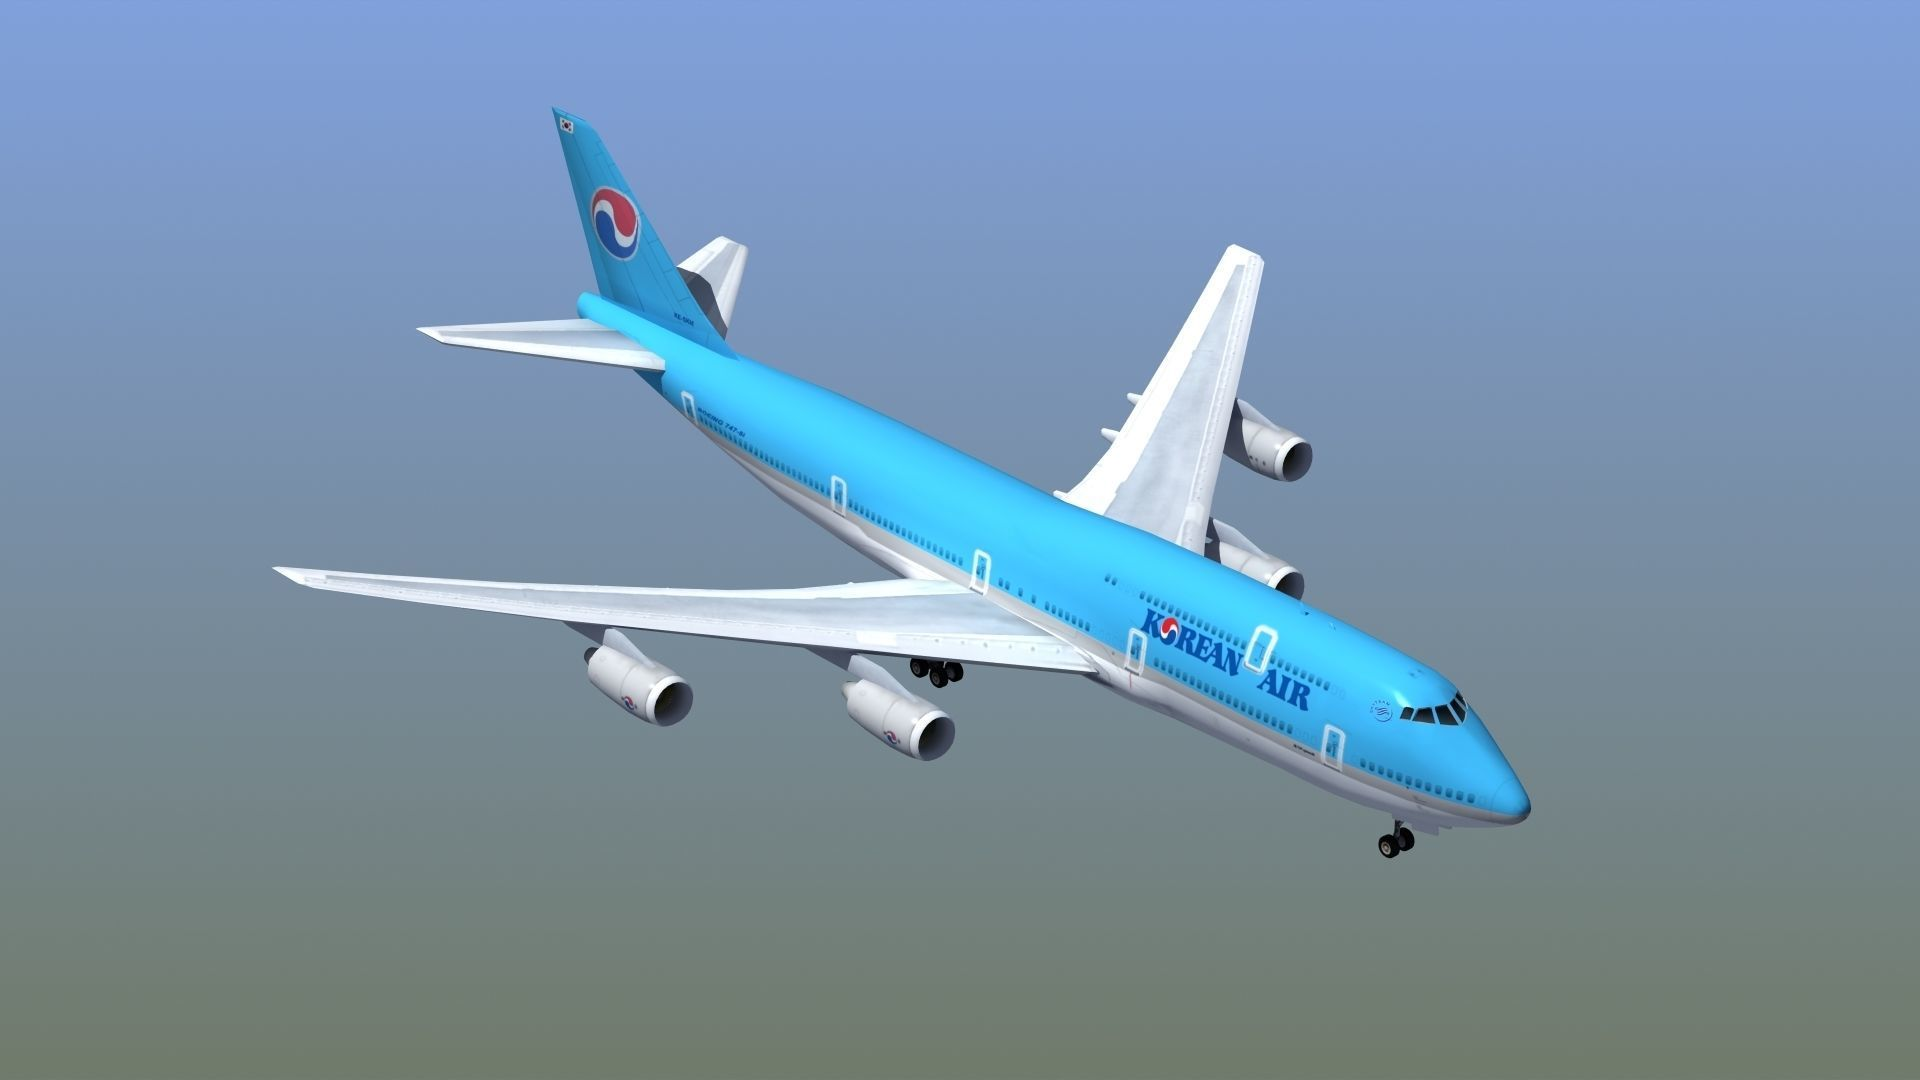 B747 Airliner